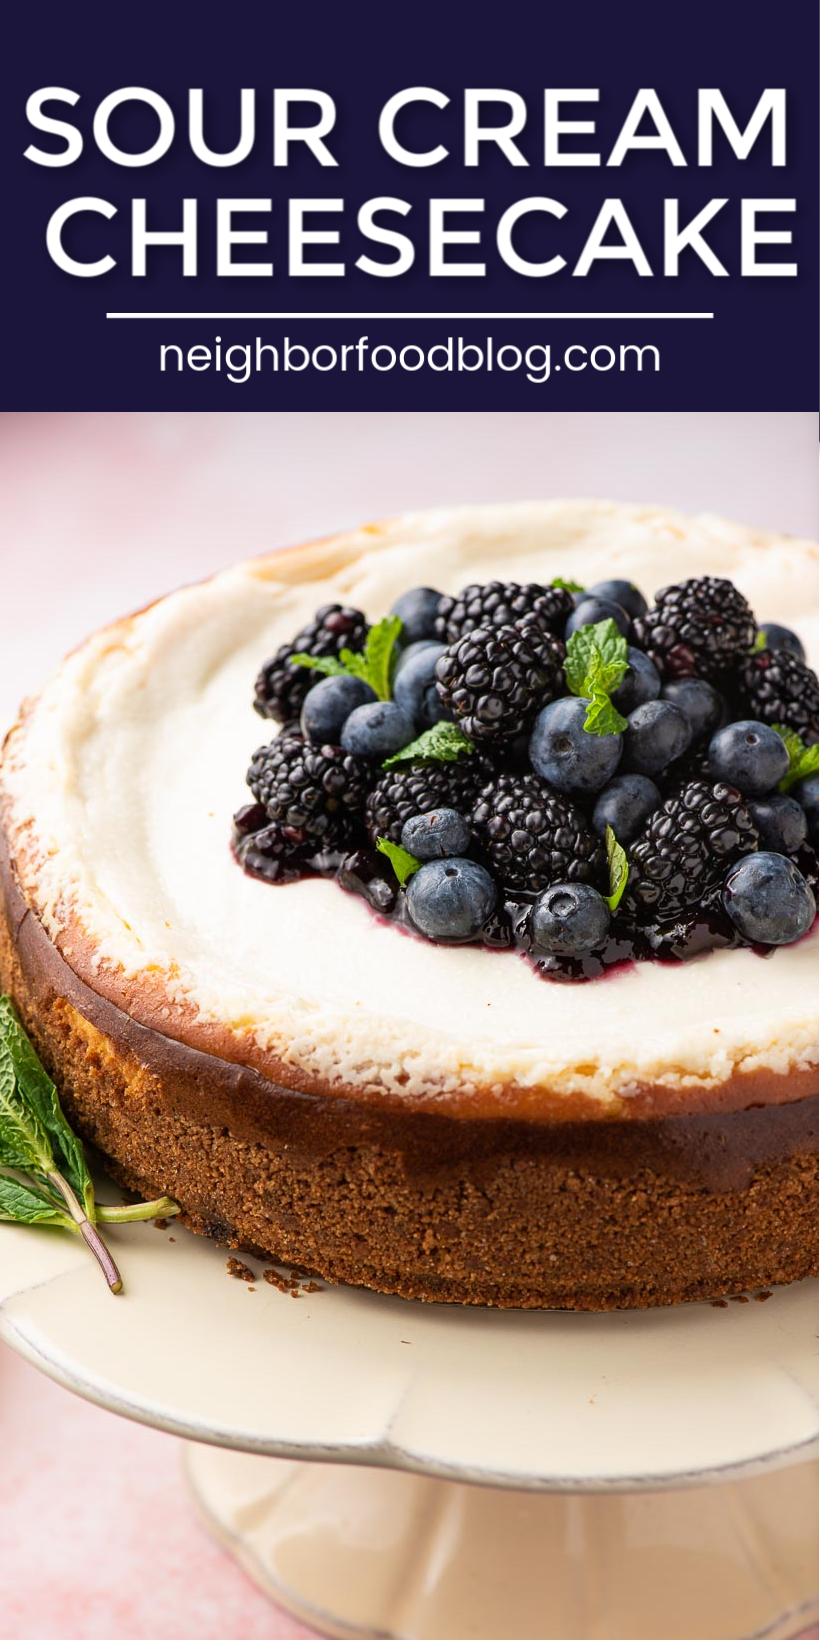 This Is The Best Cheesecake Recipe I Ve Ever Made And It S So Easy This Classic In 2020 Sour Cream Cheesecake Instant Pot Cheesecake Recipe Homemade Recipes Dessert